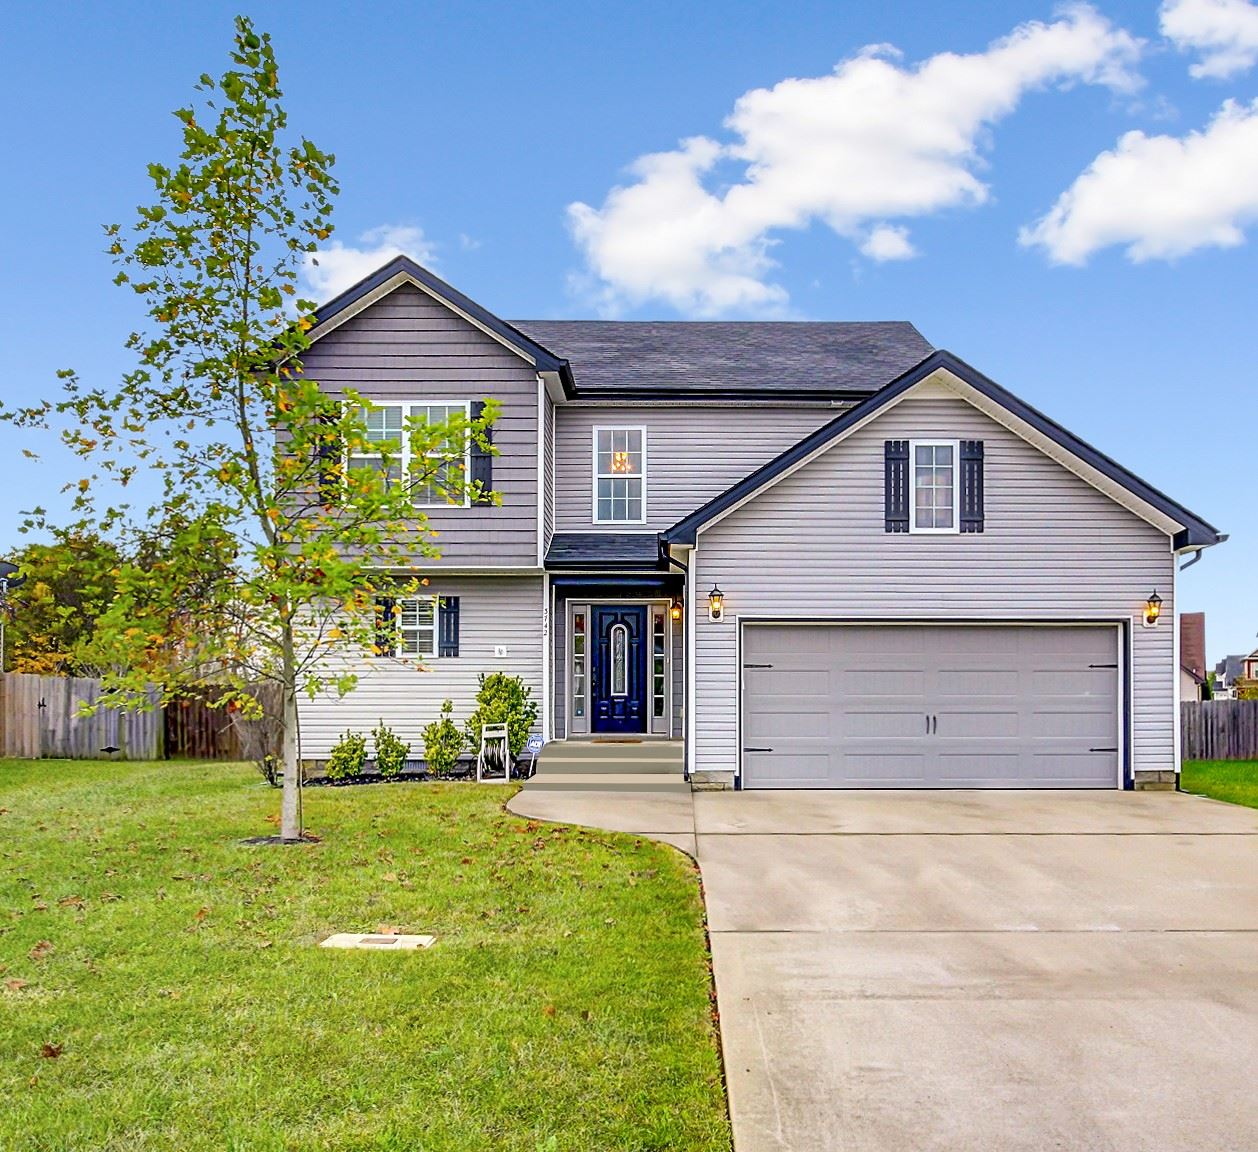 3742 Crisscross Ct, Clarksville, TN 37040 - MLS#: 2202026